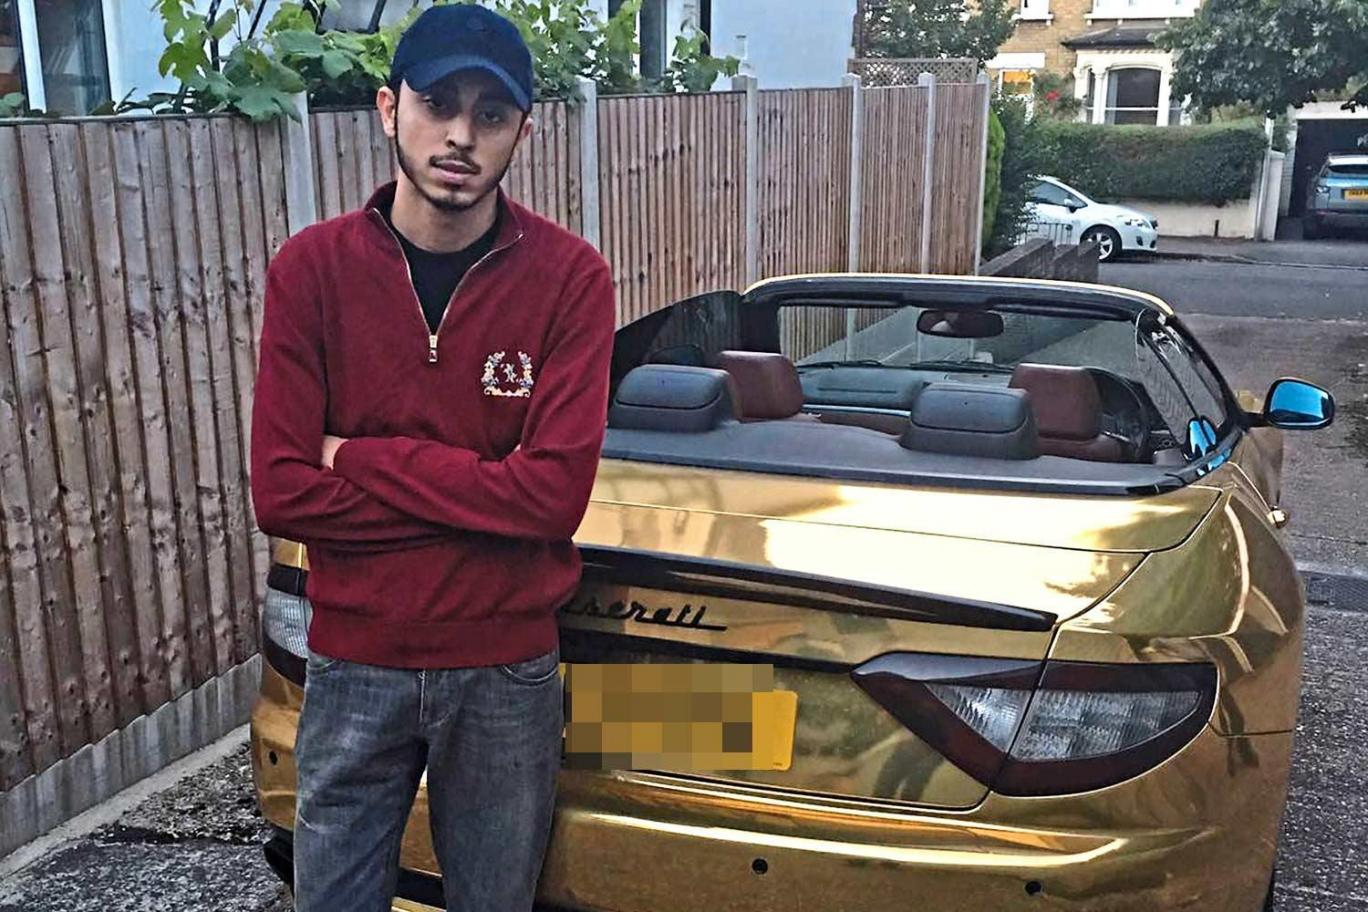 pakistani billionaire unfazed about gold plated maserati being impounded in london